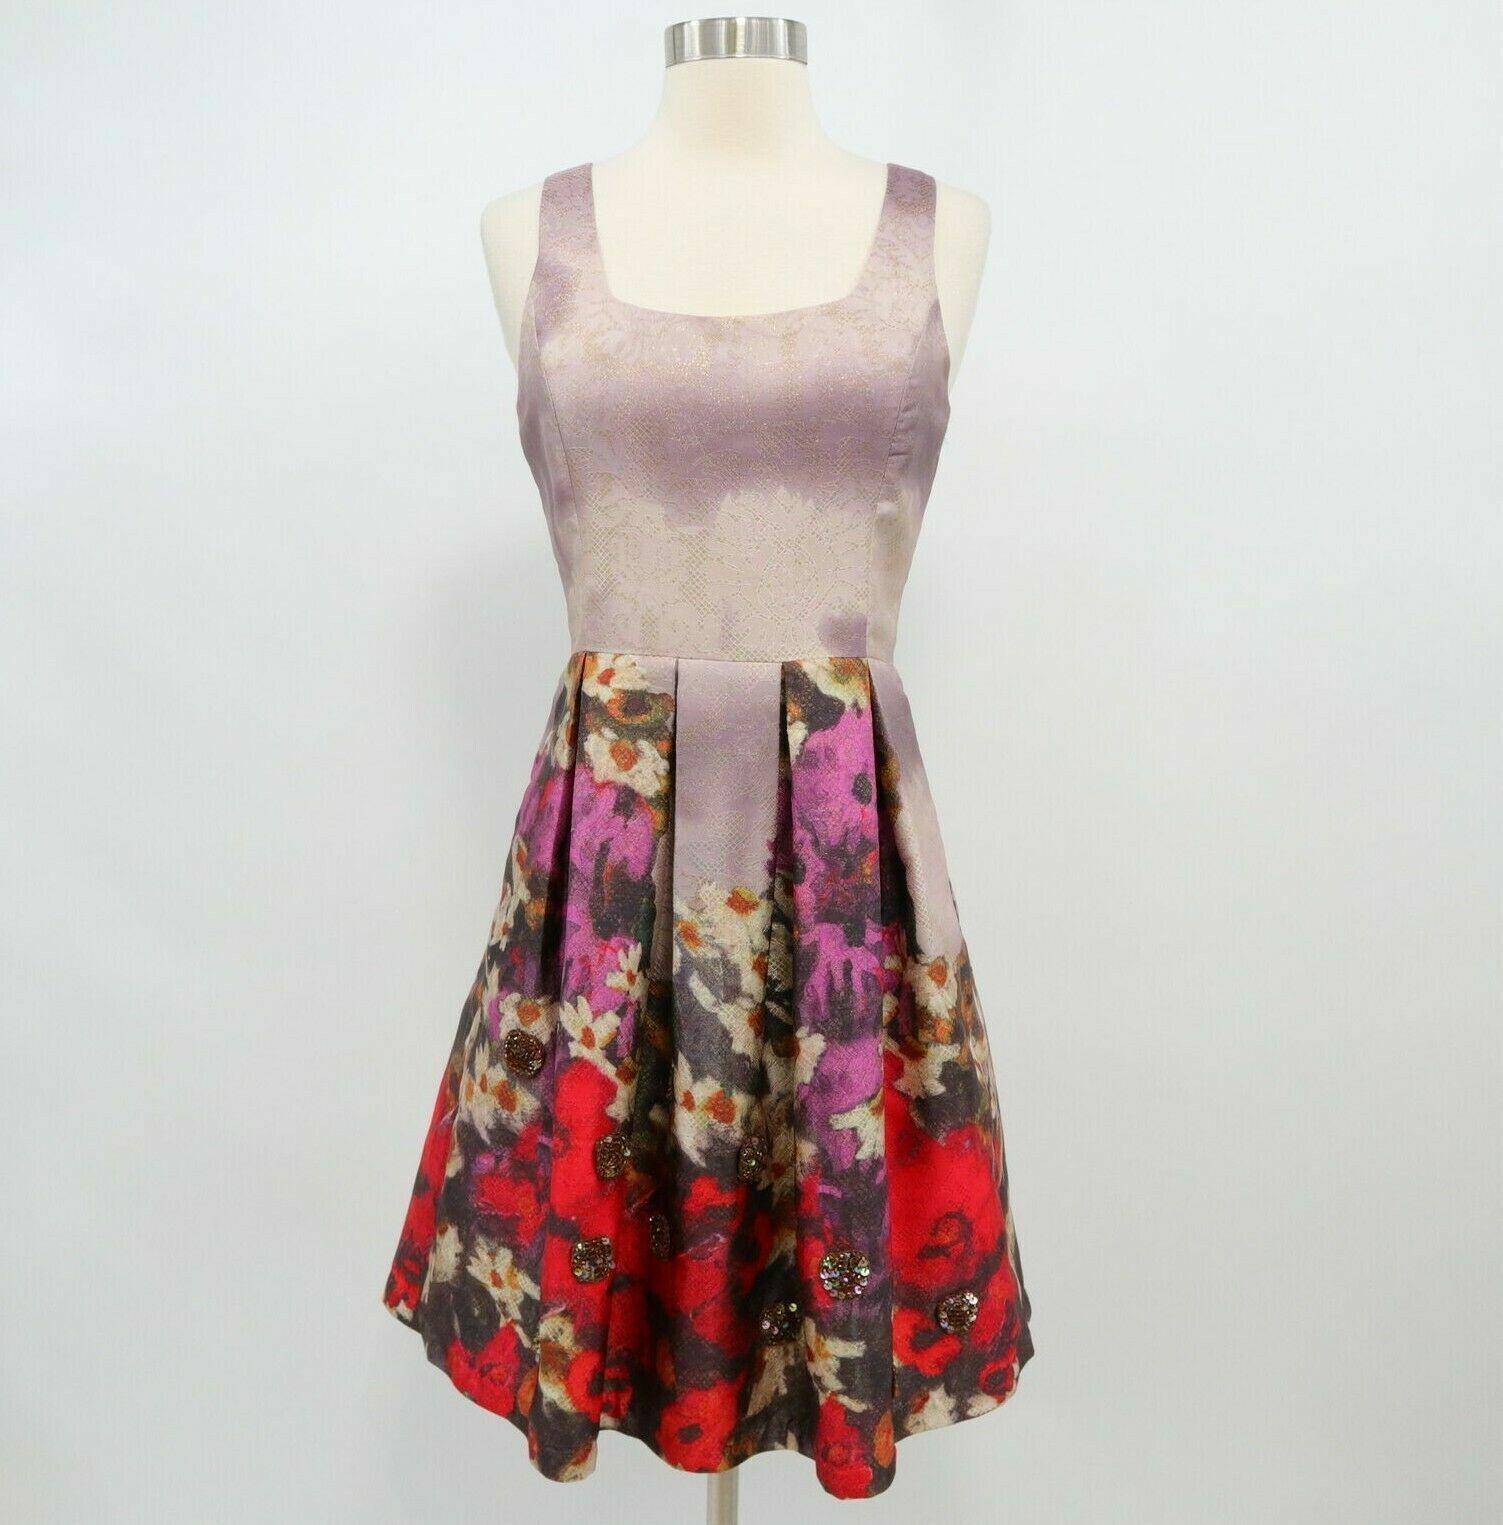 Belle Badgley Mischka Fit&Flare Dress damen Sz 2 Floral Gold Metallic Rosa